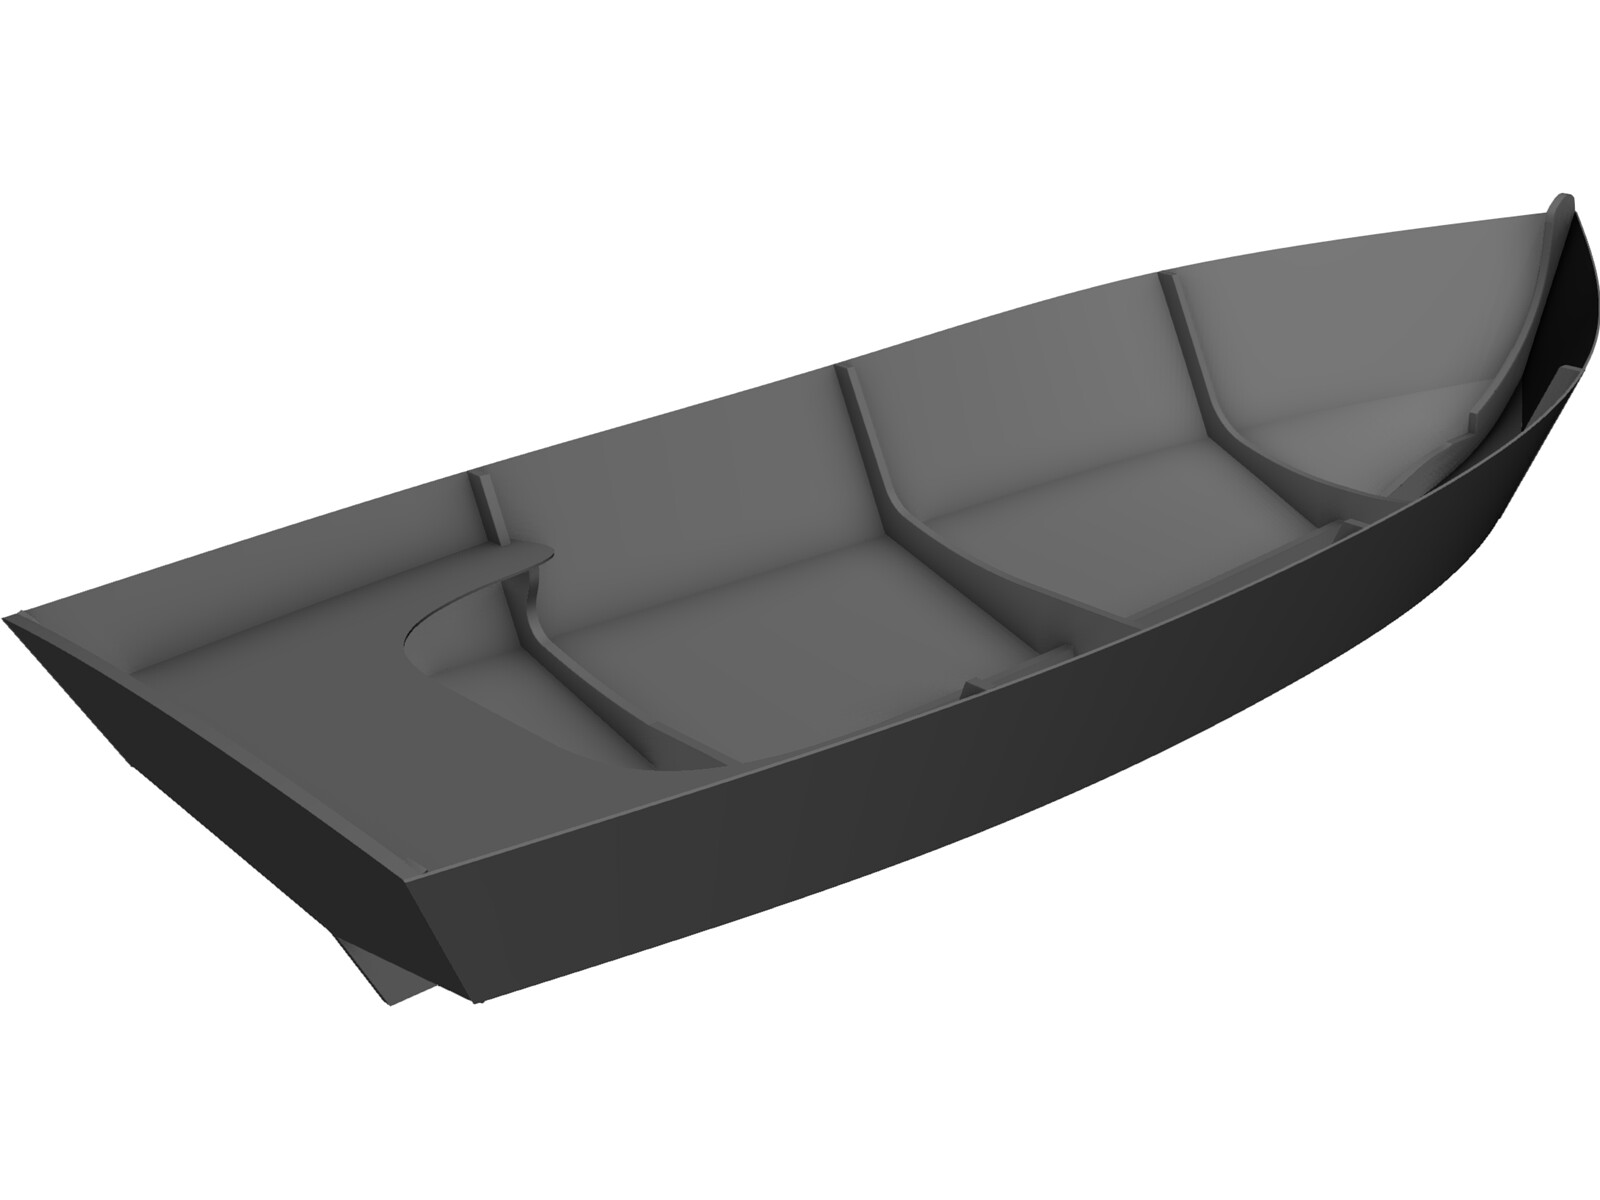 Sea Skiff Boat 3D CAD Model